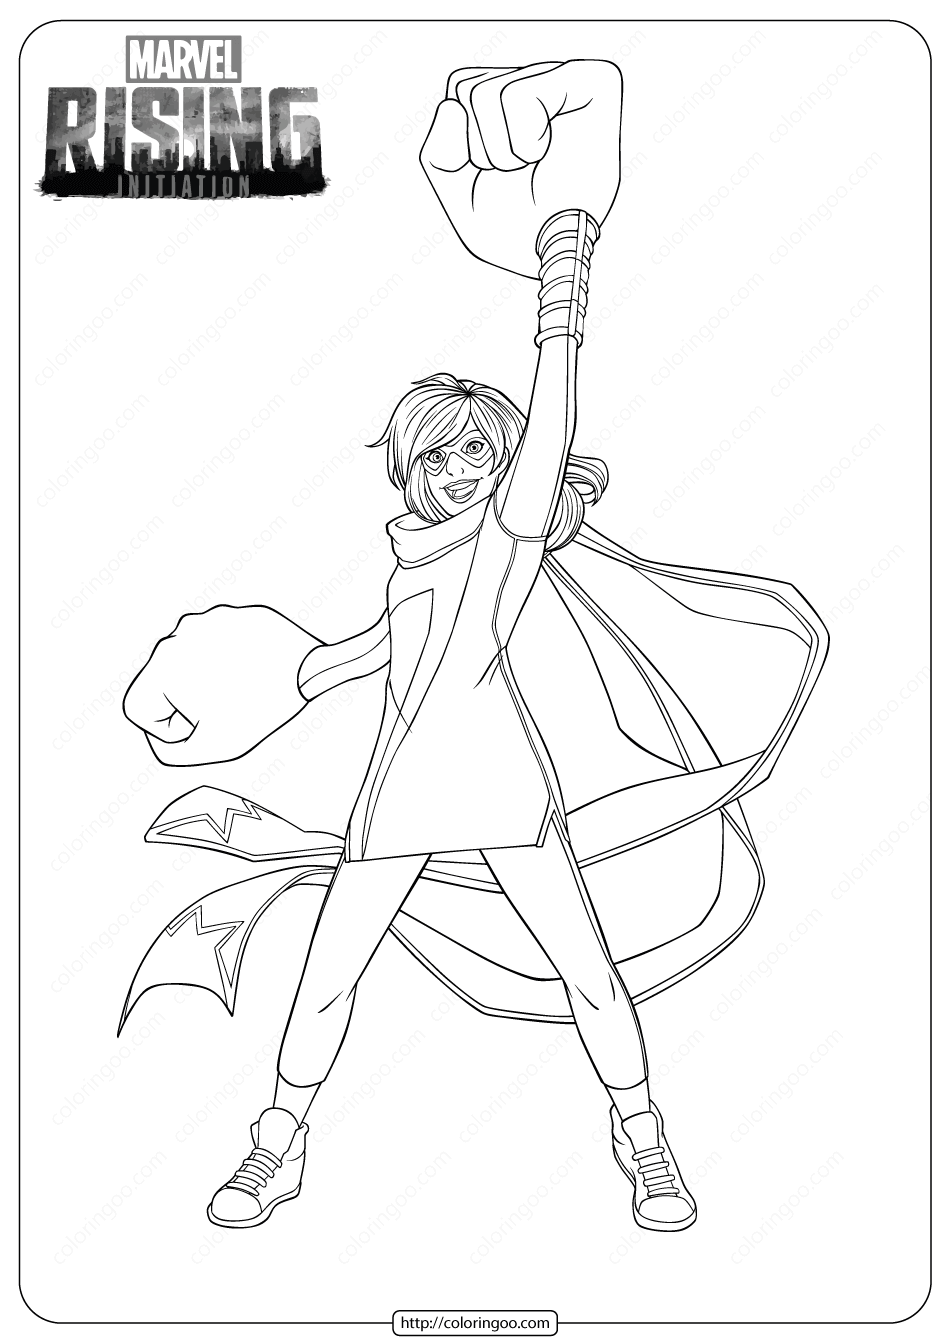 Marvel Rising Ms Marvel Coloring Pages Marvel Coloring Coloring Pages Ms Marvel